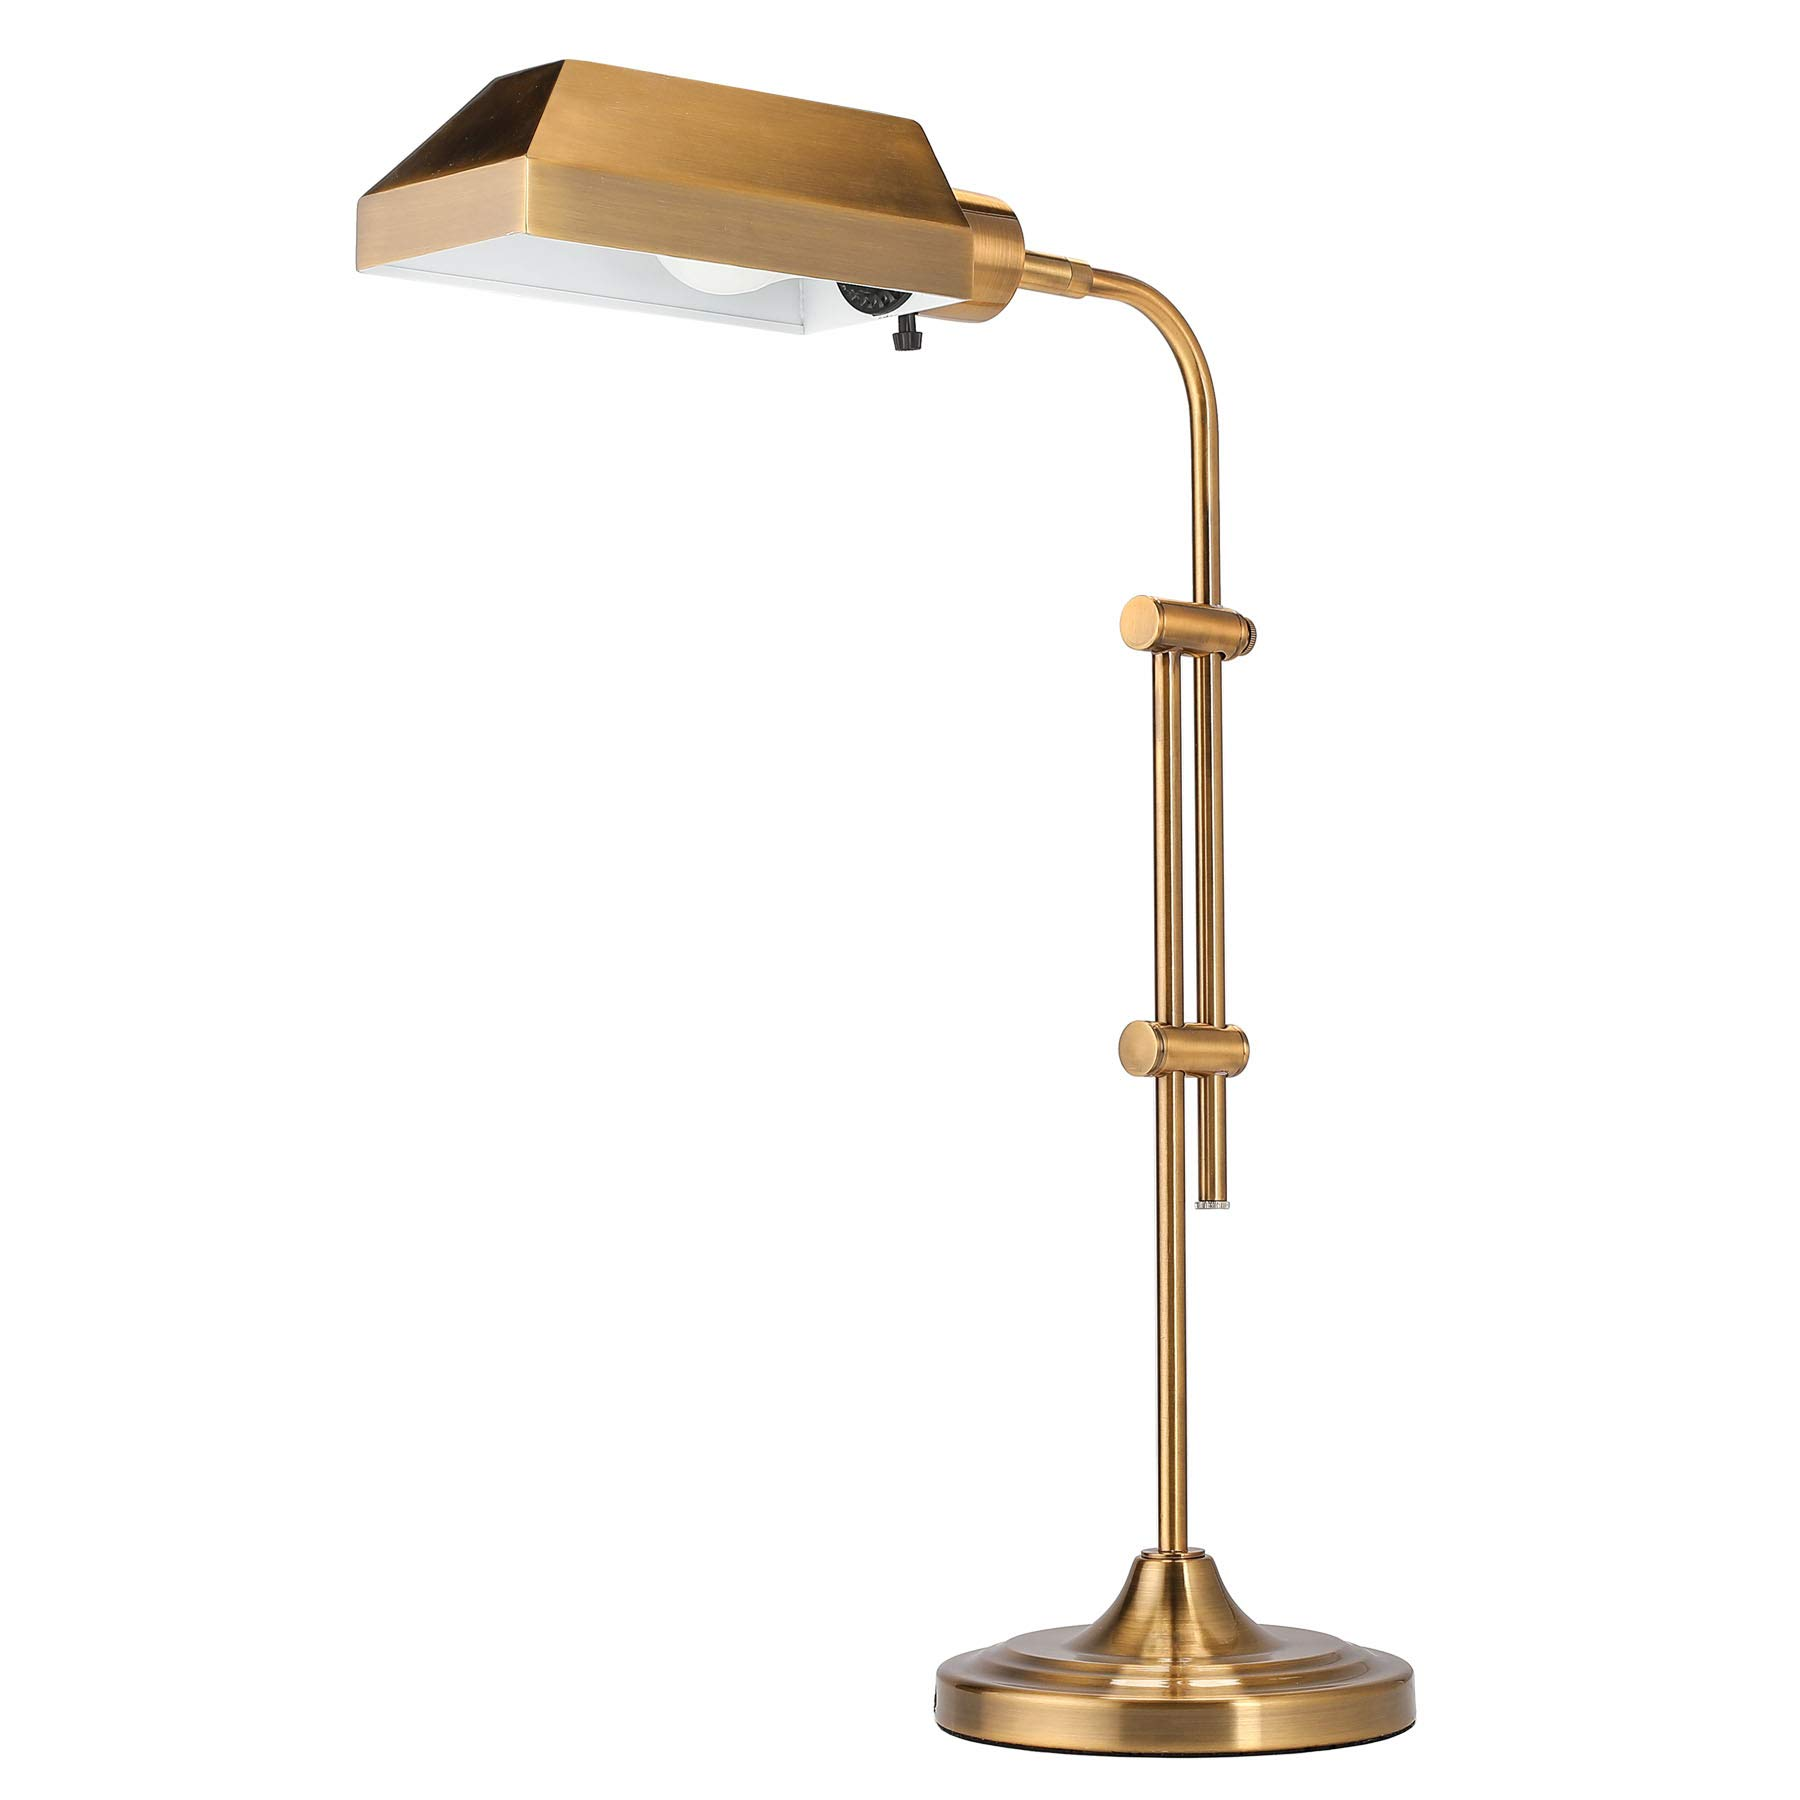 CO-Z Gold Pharmacy Desk Lamp - 25 inches Plus Size - Mid-Century Antique Brass Finish Reading Lamp with 10W LED Bulb, for Office Living Room Side Table Bedside - UL Listed by CO-Z